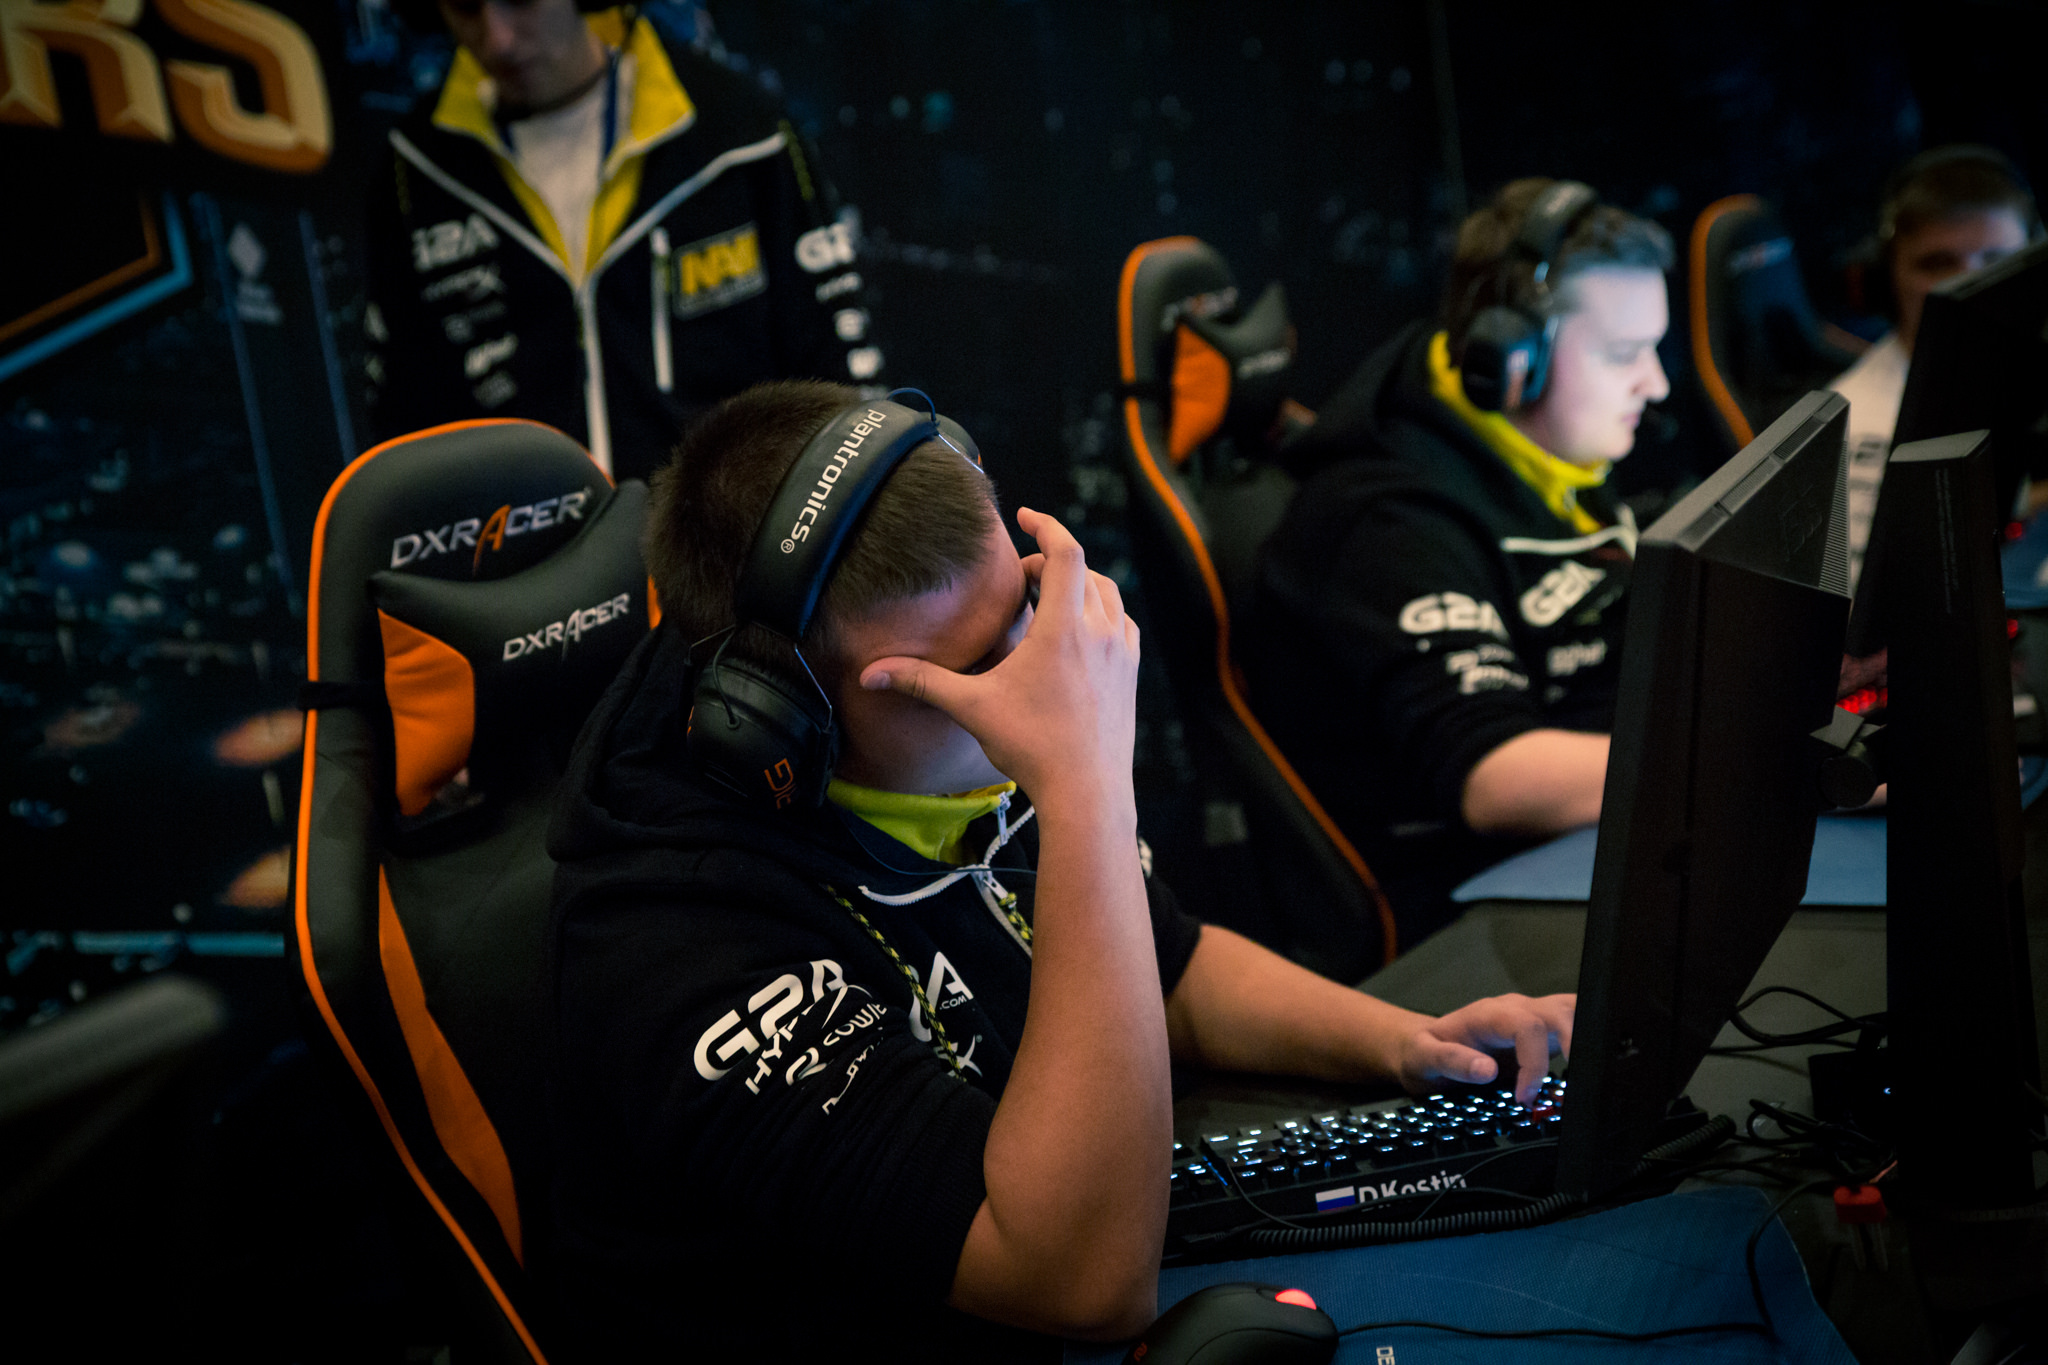 Cloud9 and Na'Vi: Dueling disappointments